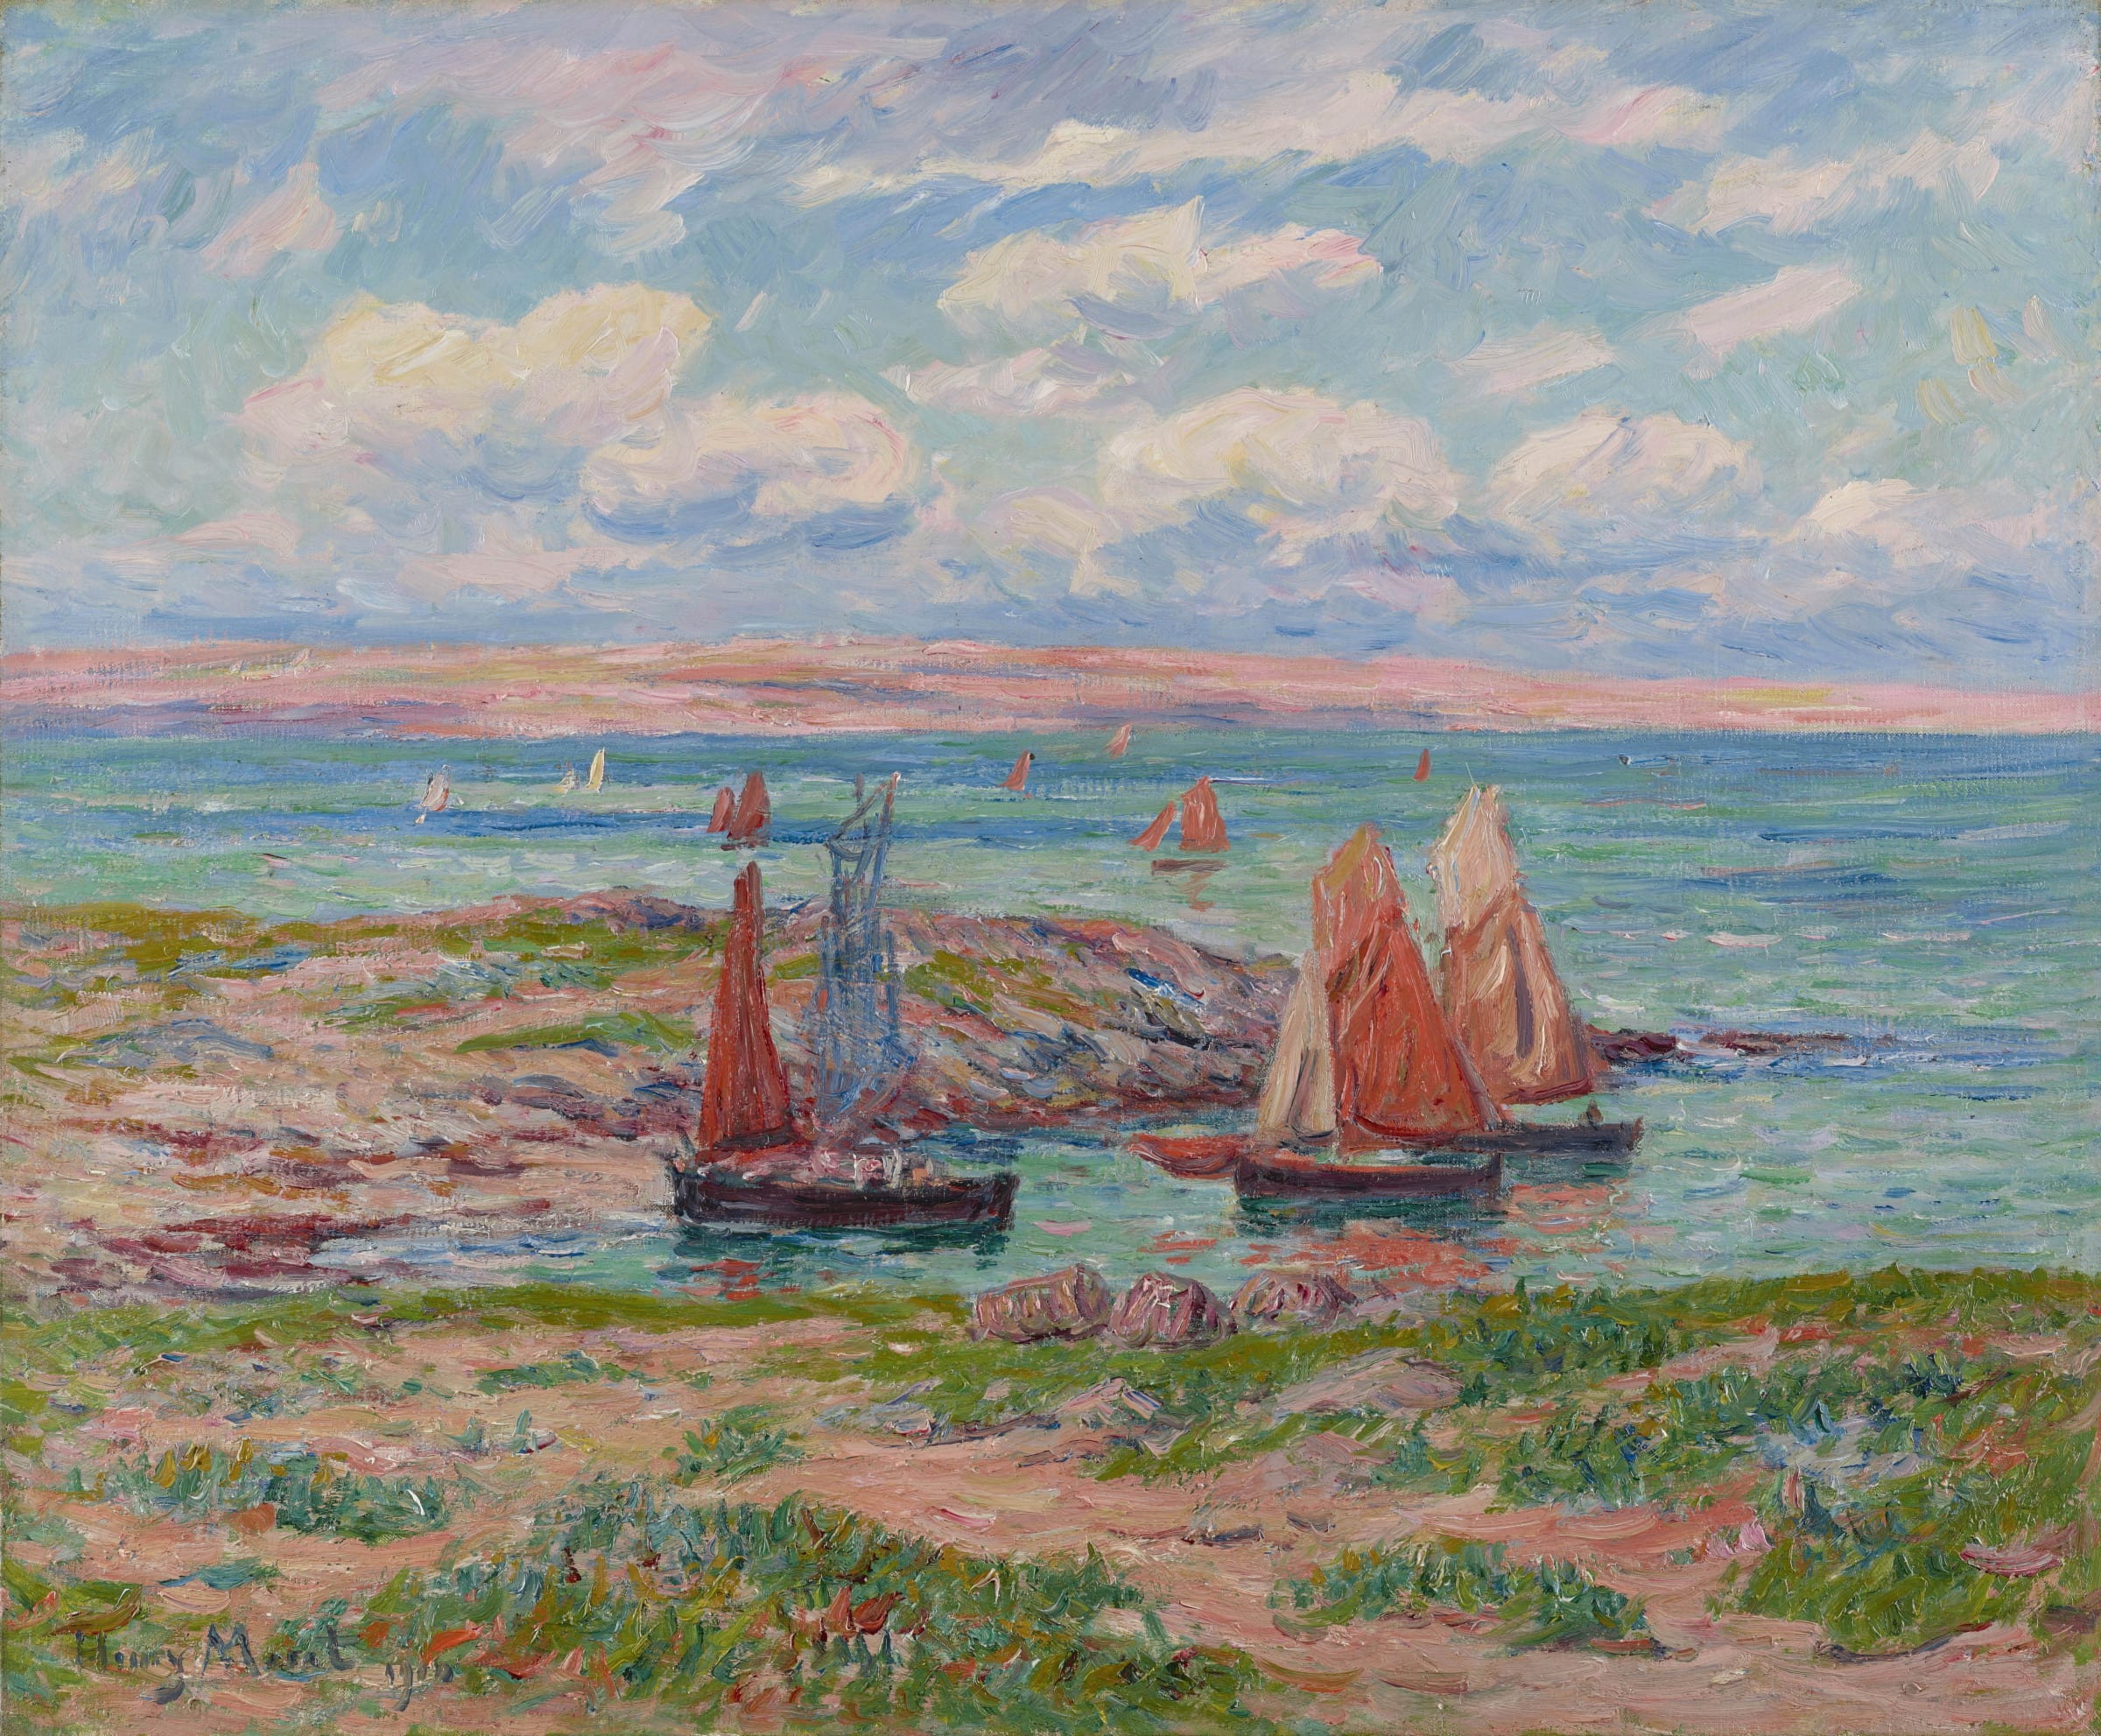 <span class=&#34;link fancybox-details-link&#34;><a href=&#34;/artists/69-henry-moret/works/9412-henry-moret-baie-d-audierne-finist-re-1910/&#34;>View Detail Page</a></span><div class=&#34;artist&#34;><span class=&#34;artist&#34;><strong>Henry Moret</strong></span></div>